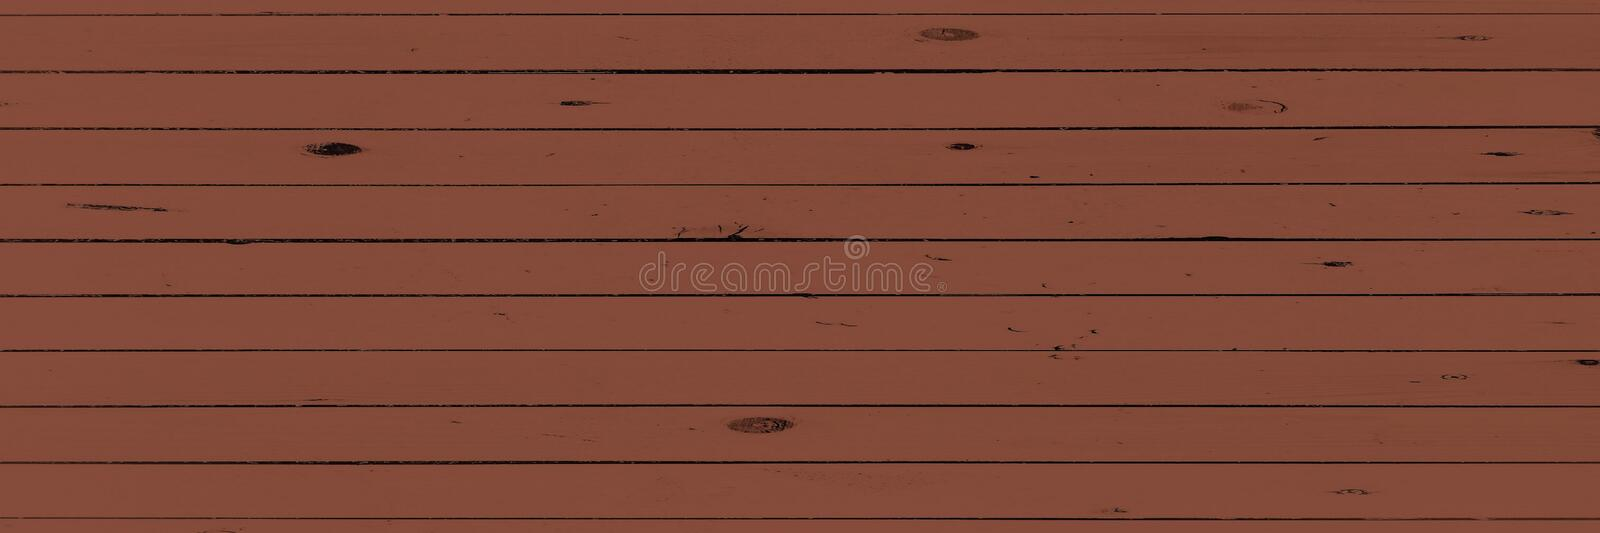 Wood texture background, wood planks. Old washed wood table pattern top view. Wood texture background, wood planks. Old washed wood table pattern top view royalty free stock image